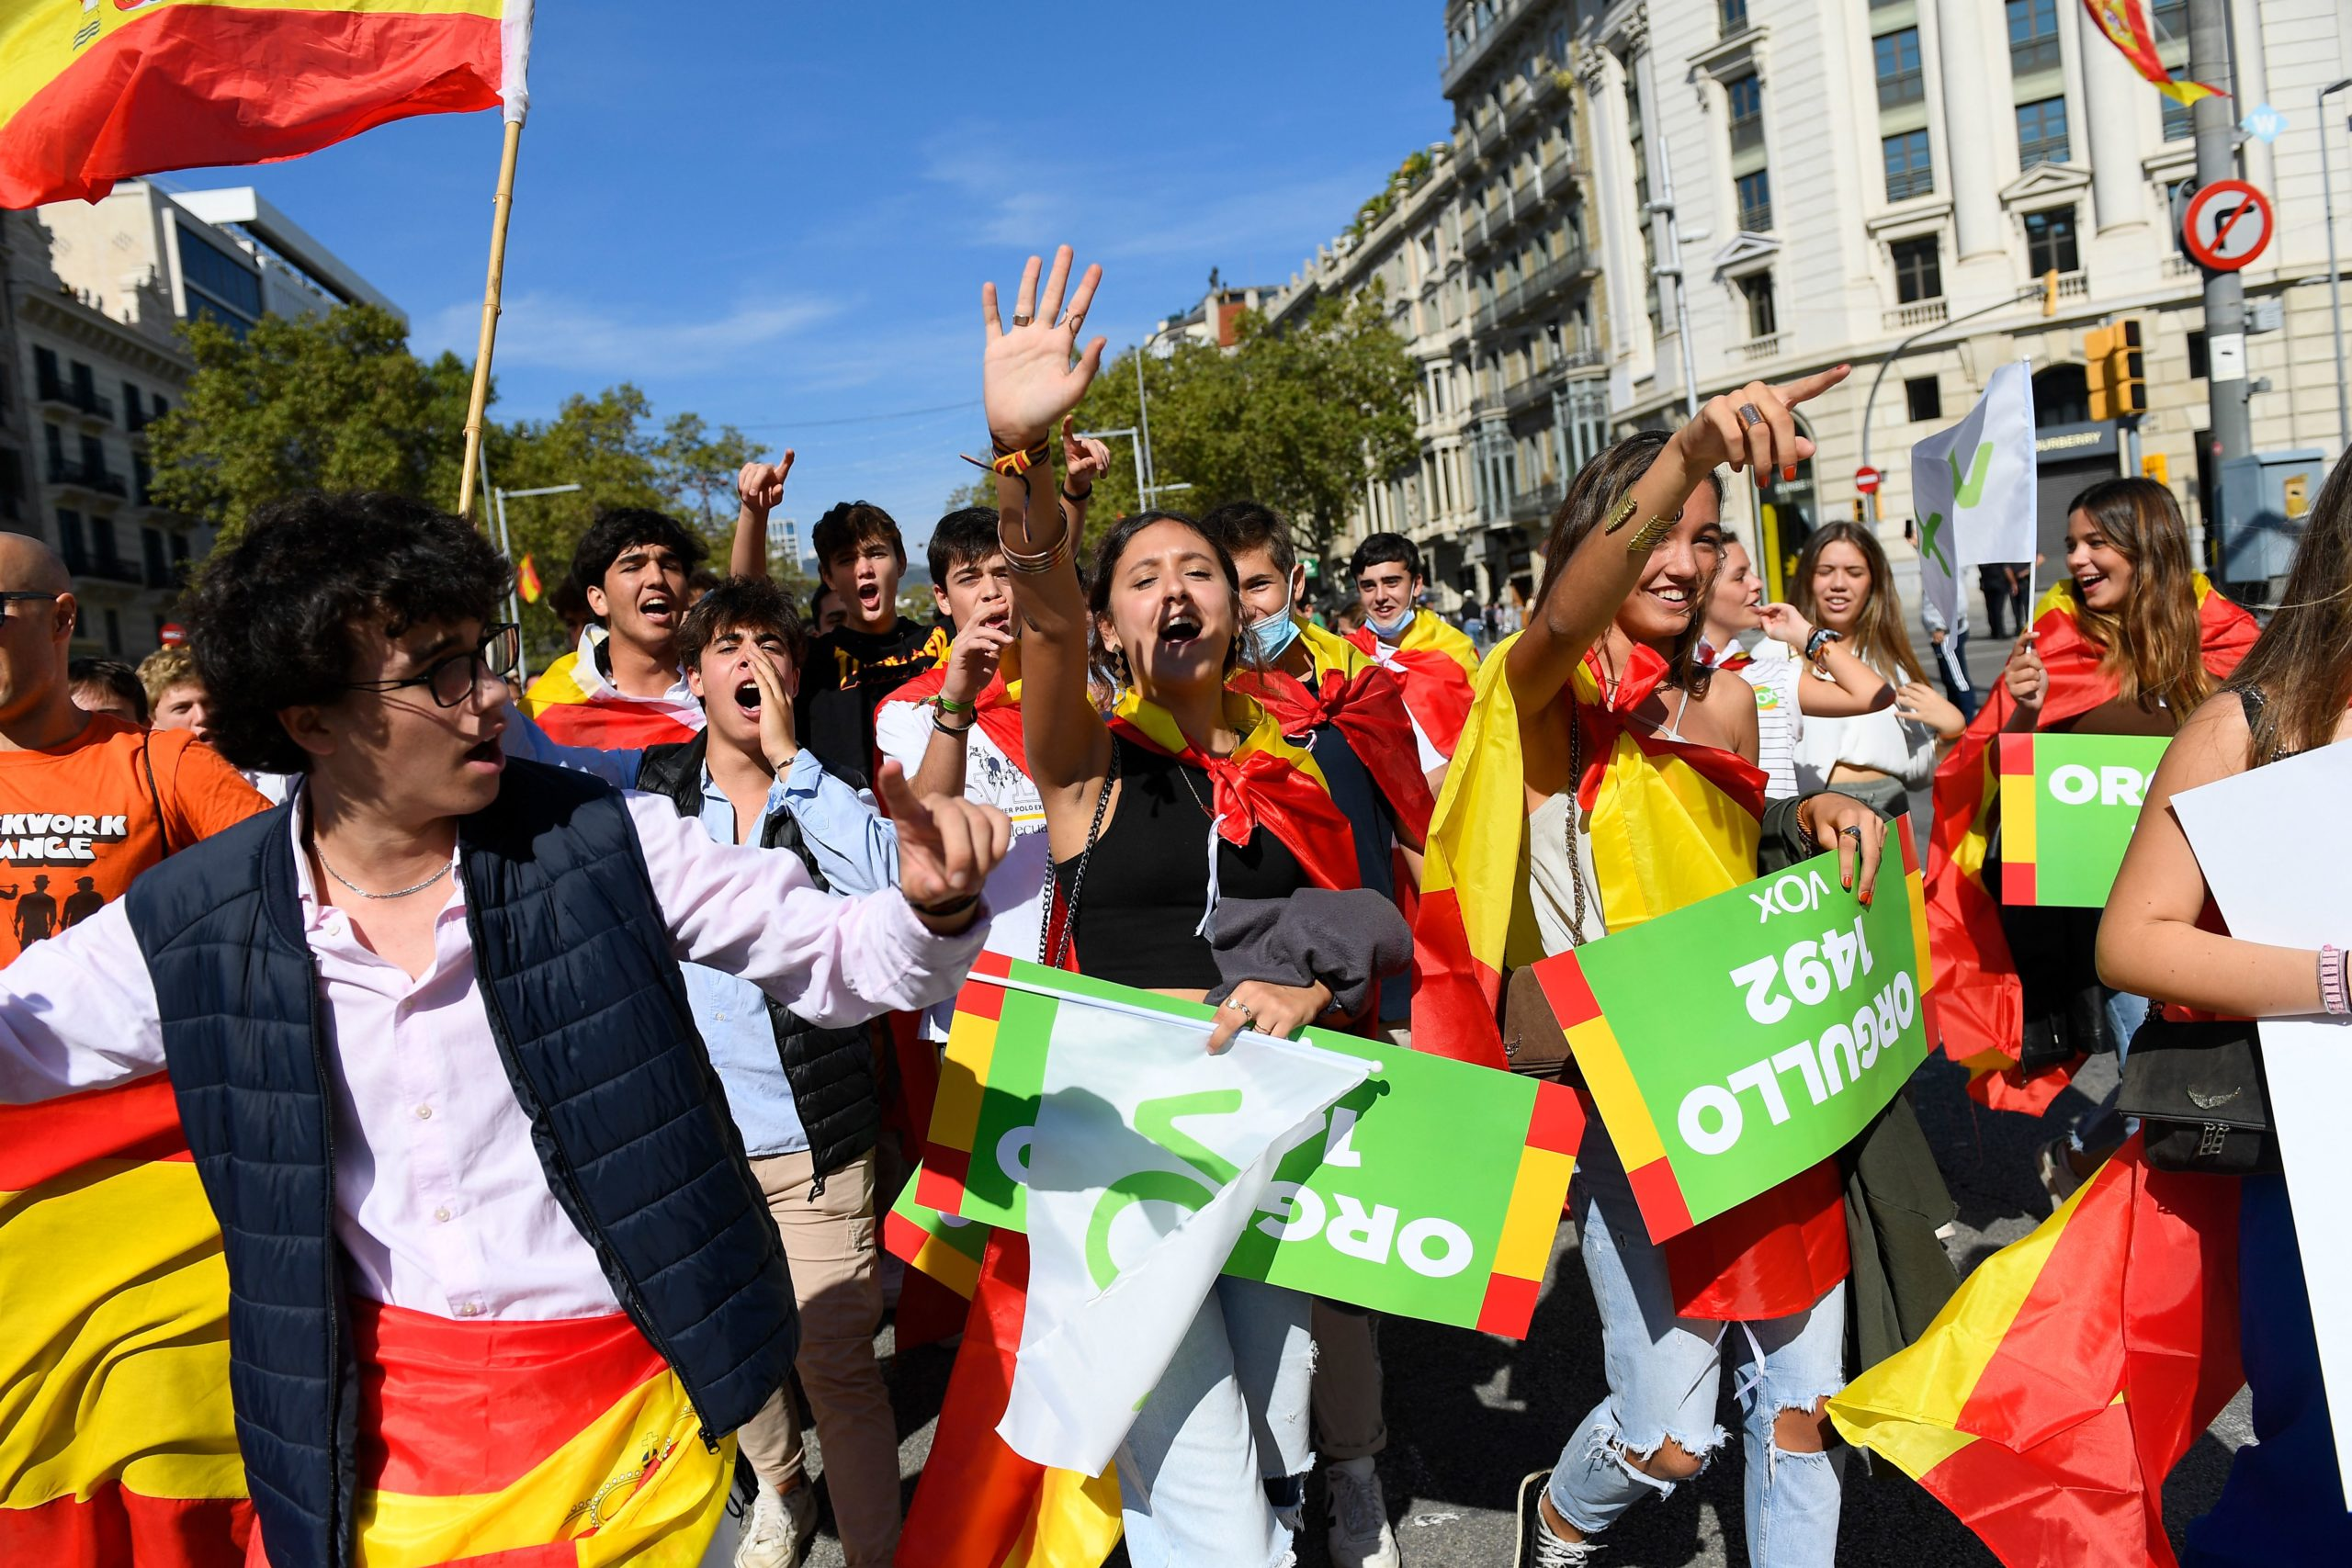 SPAIN-NATIONAL DAY-DEMO